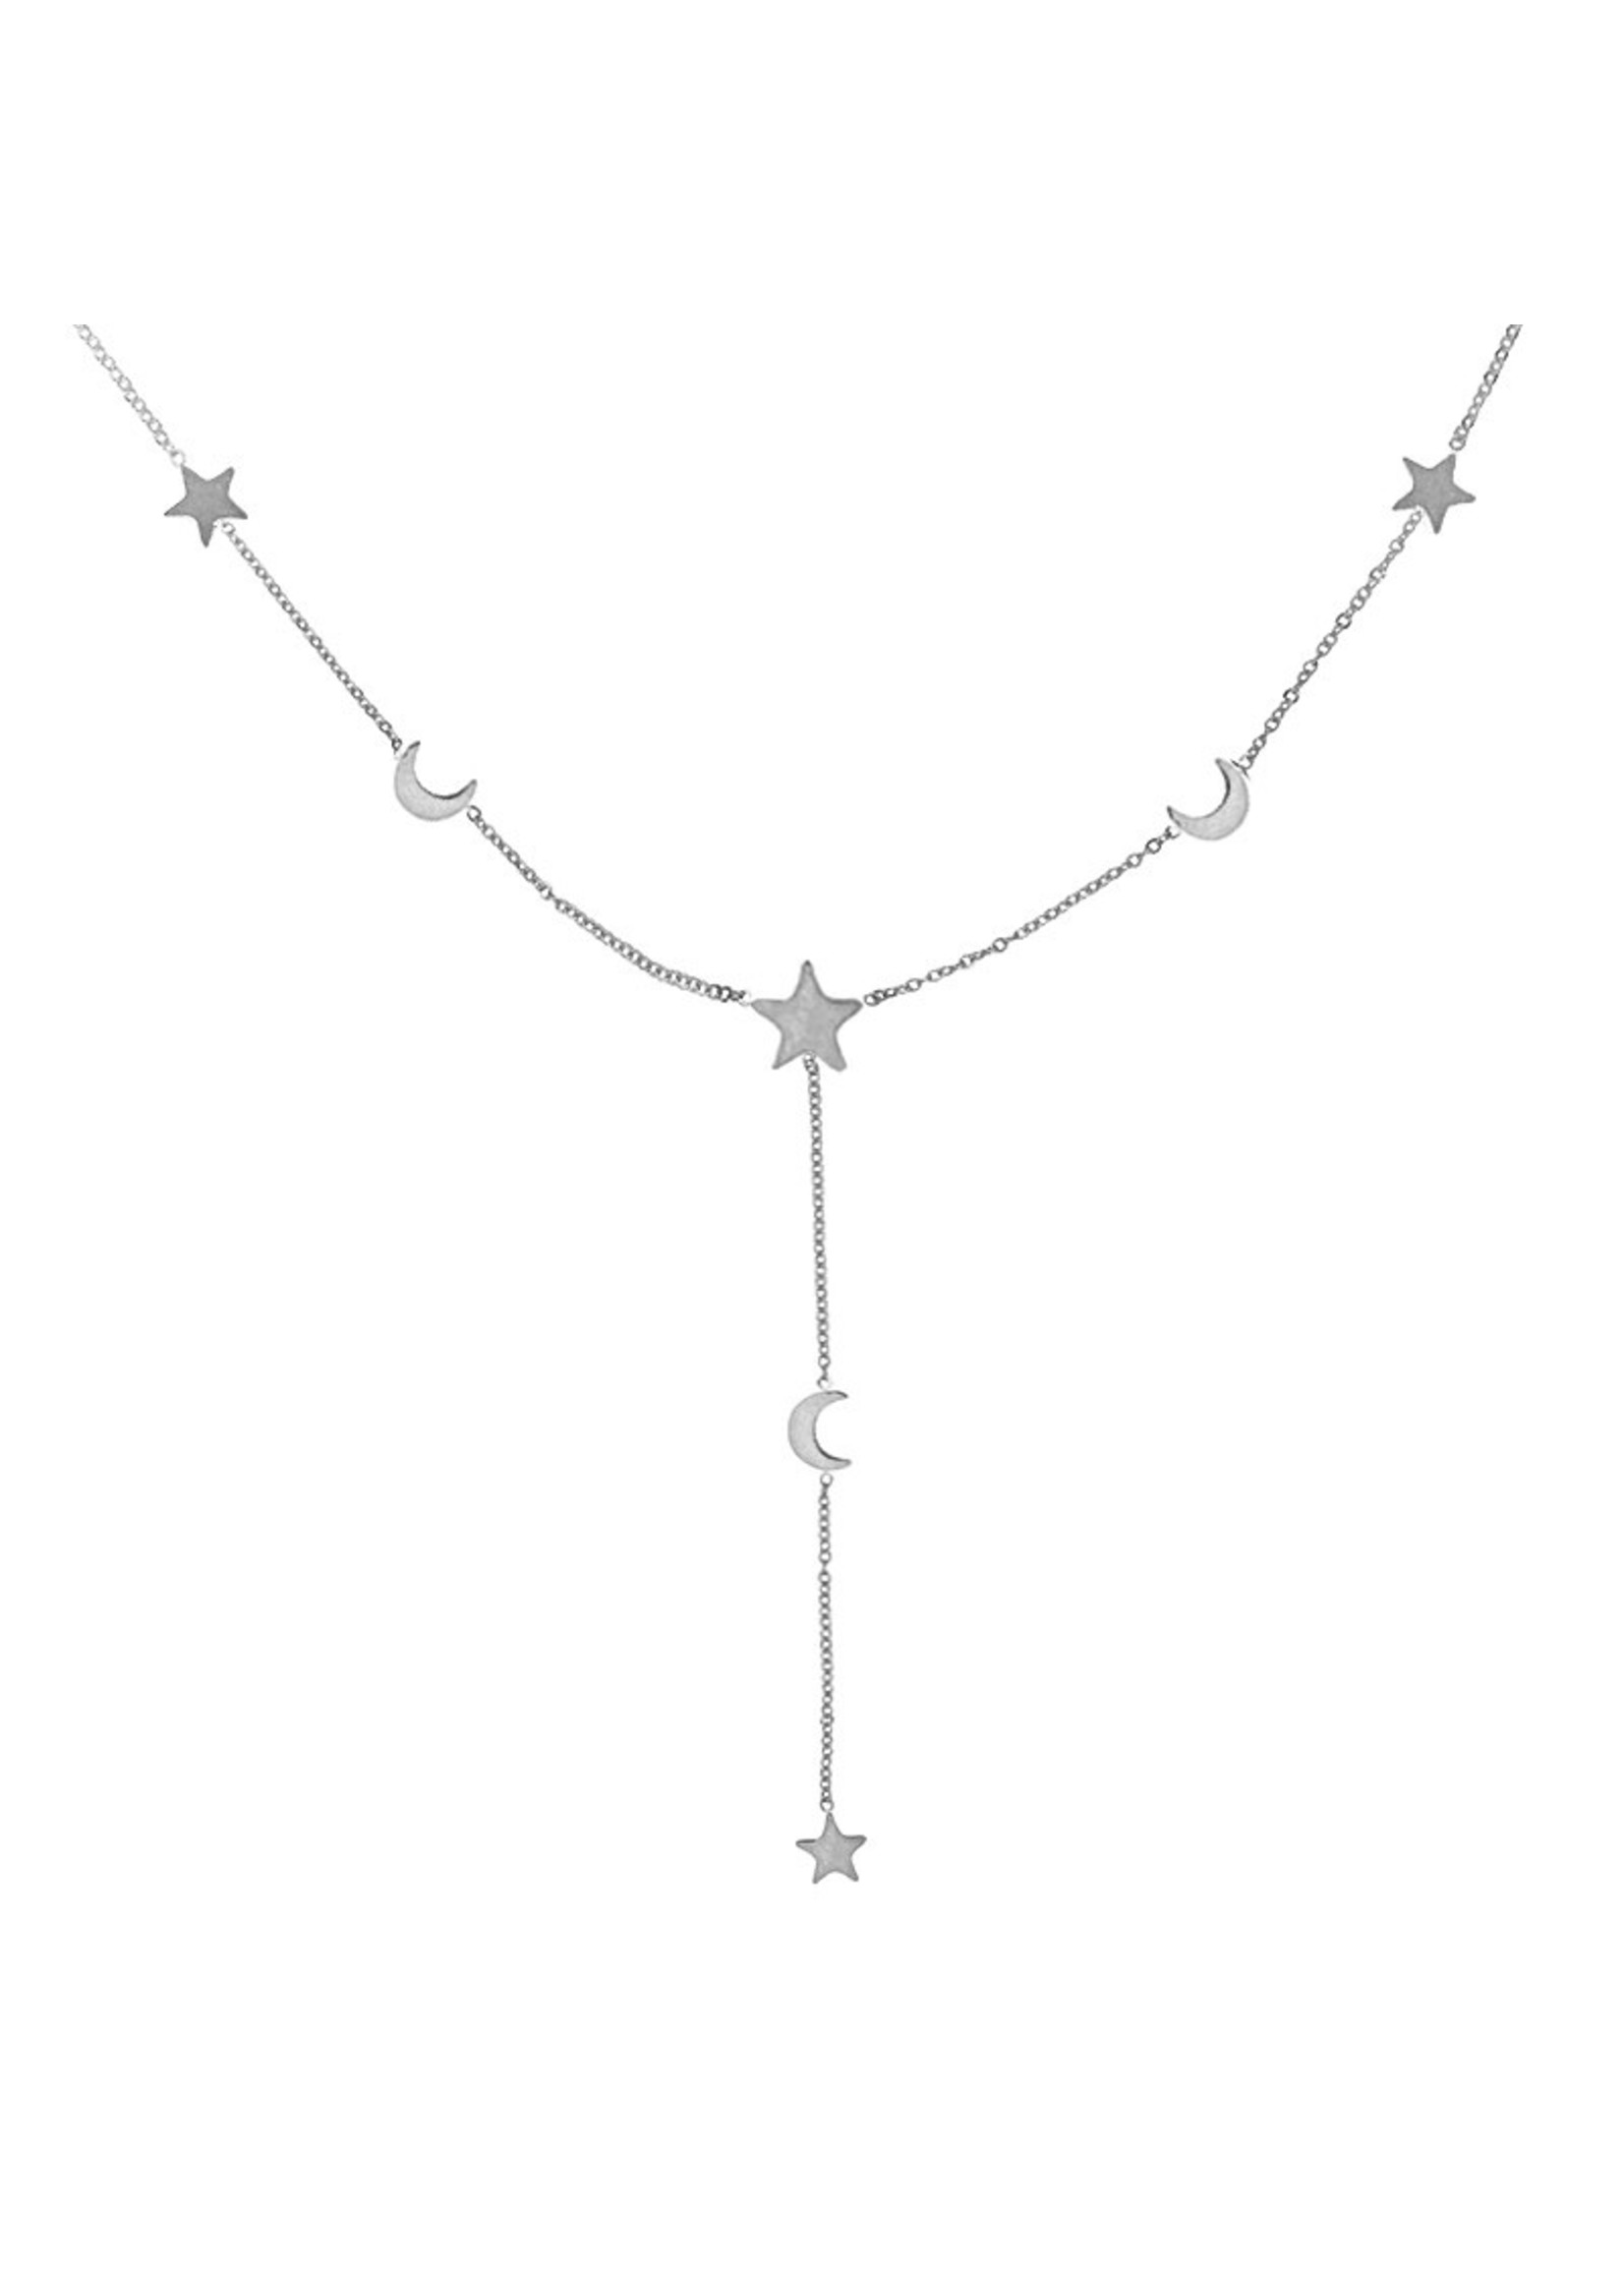 Ladybugs Ketting stainless steel stars moons ZILVER